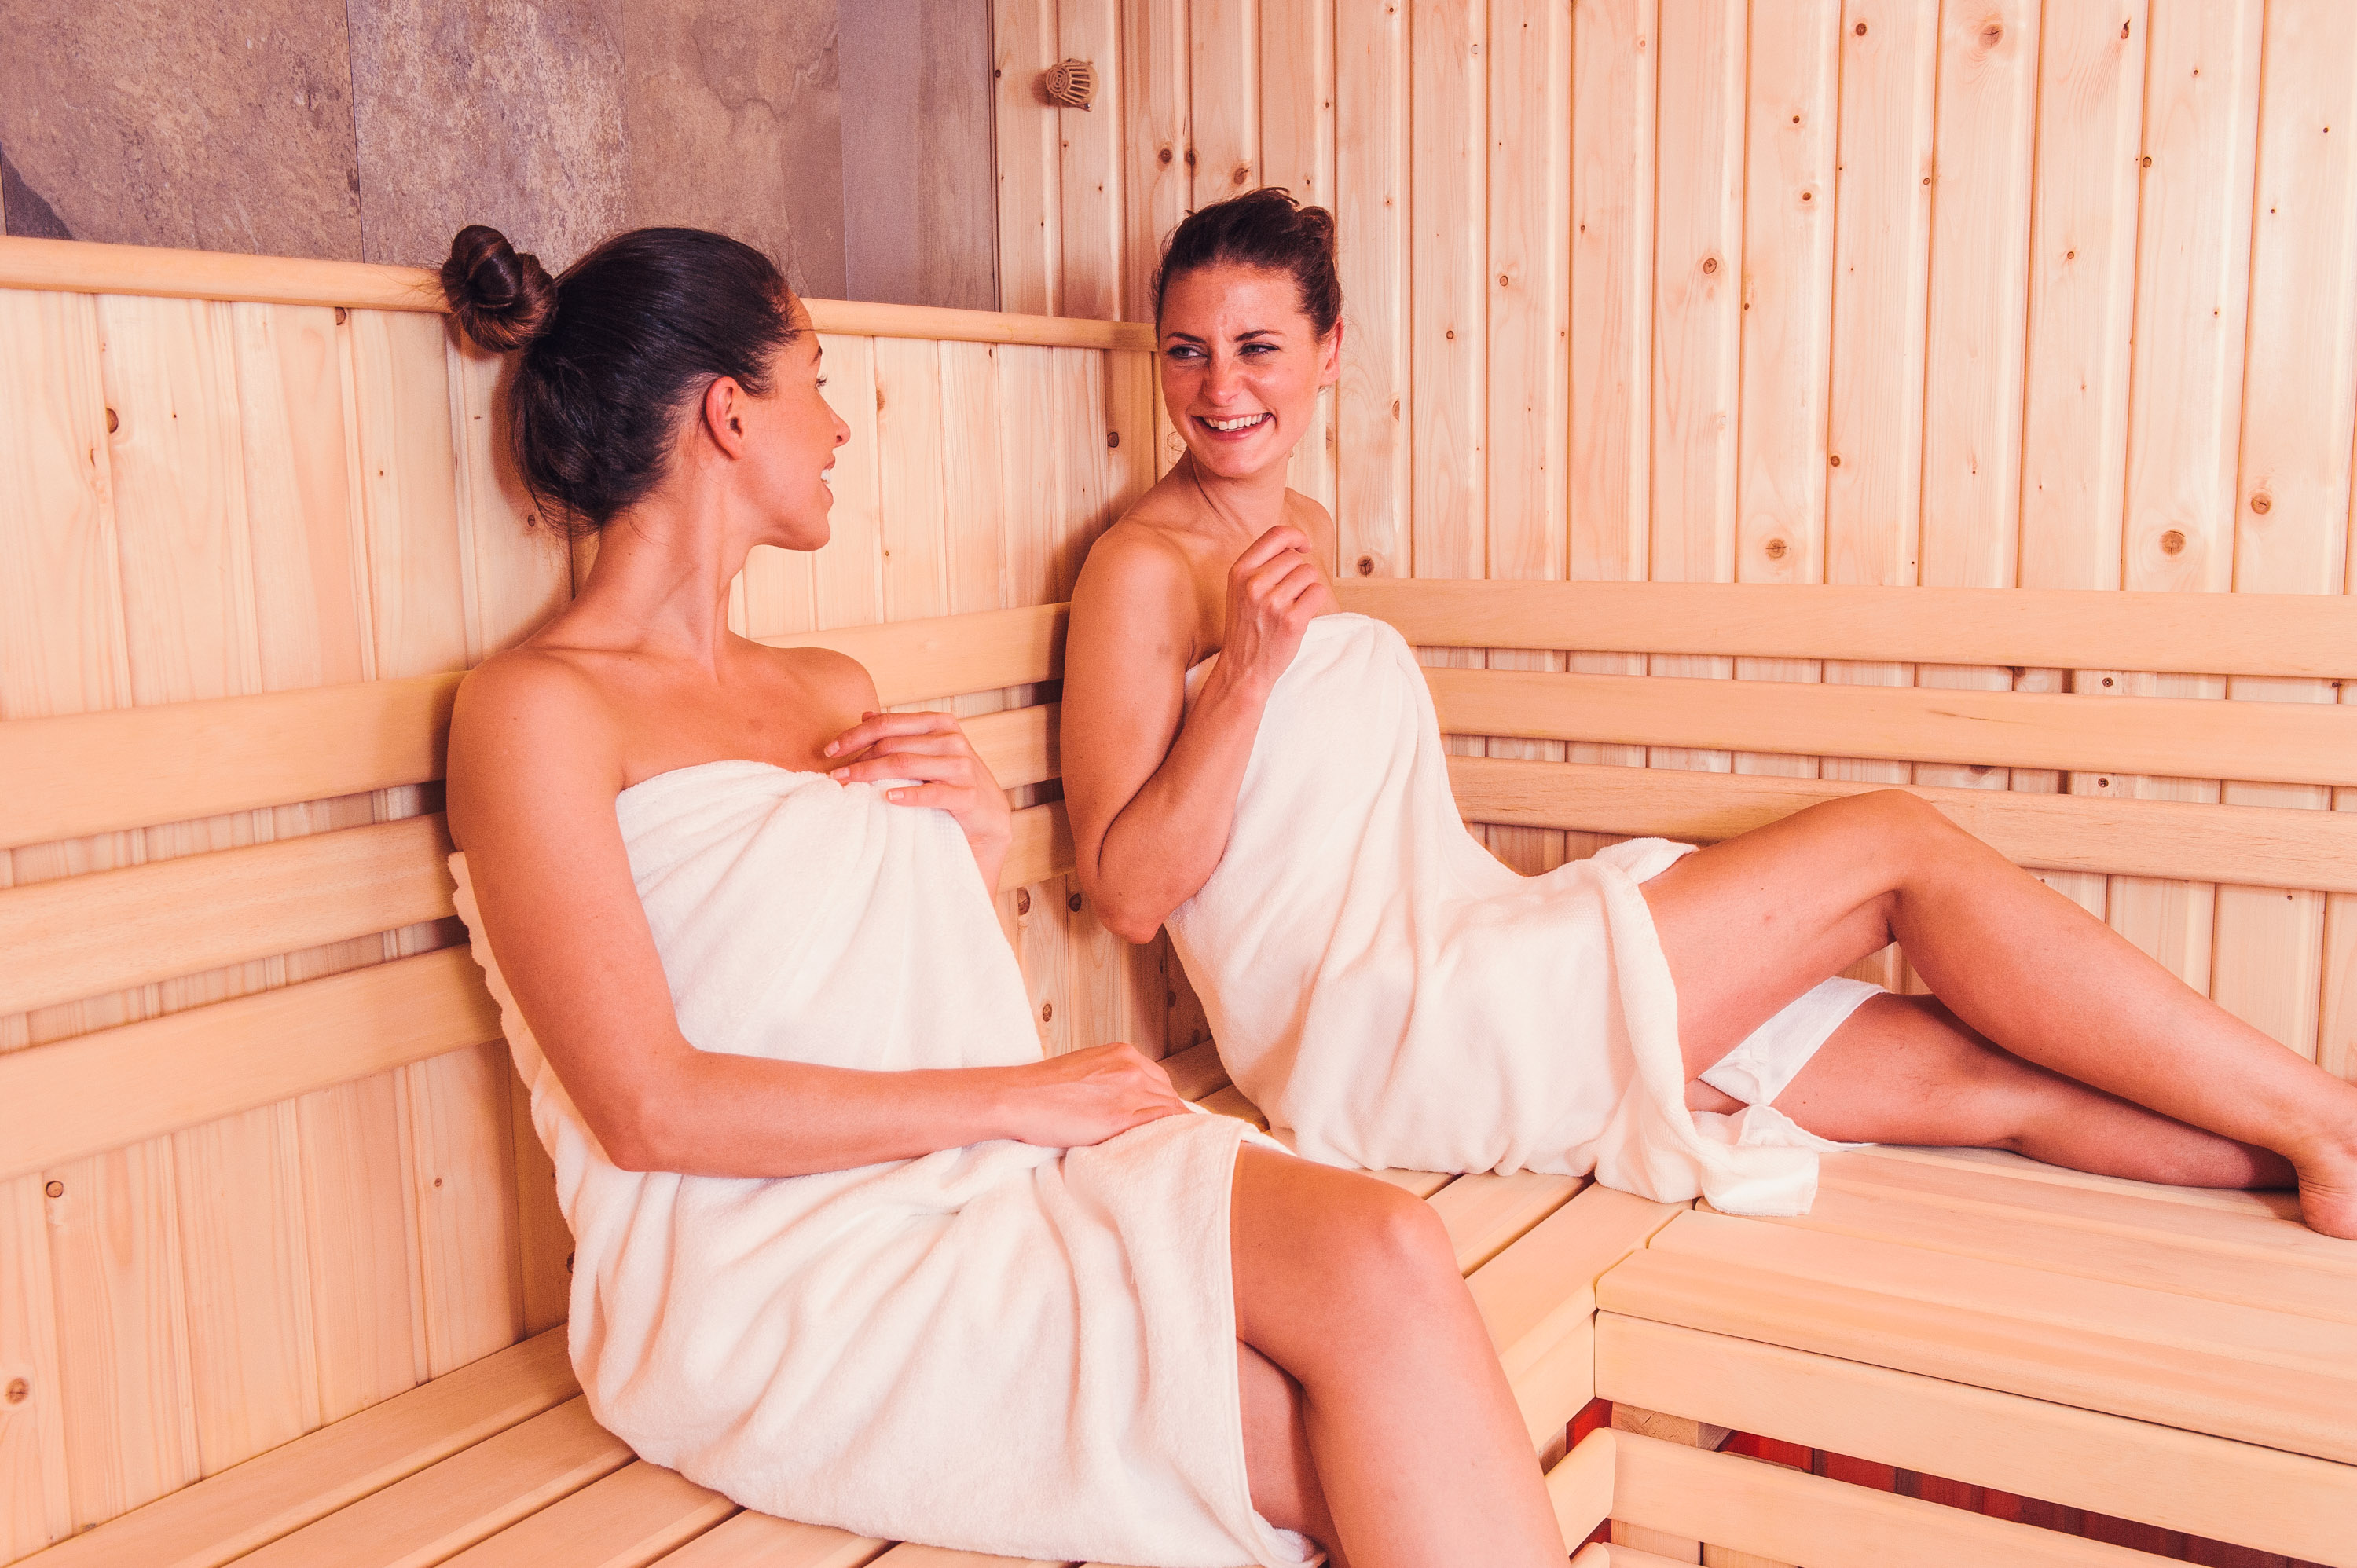 Friends relaxing in the sauna